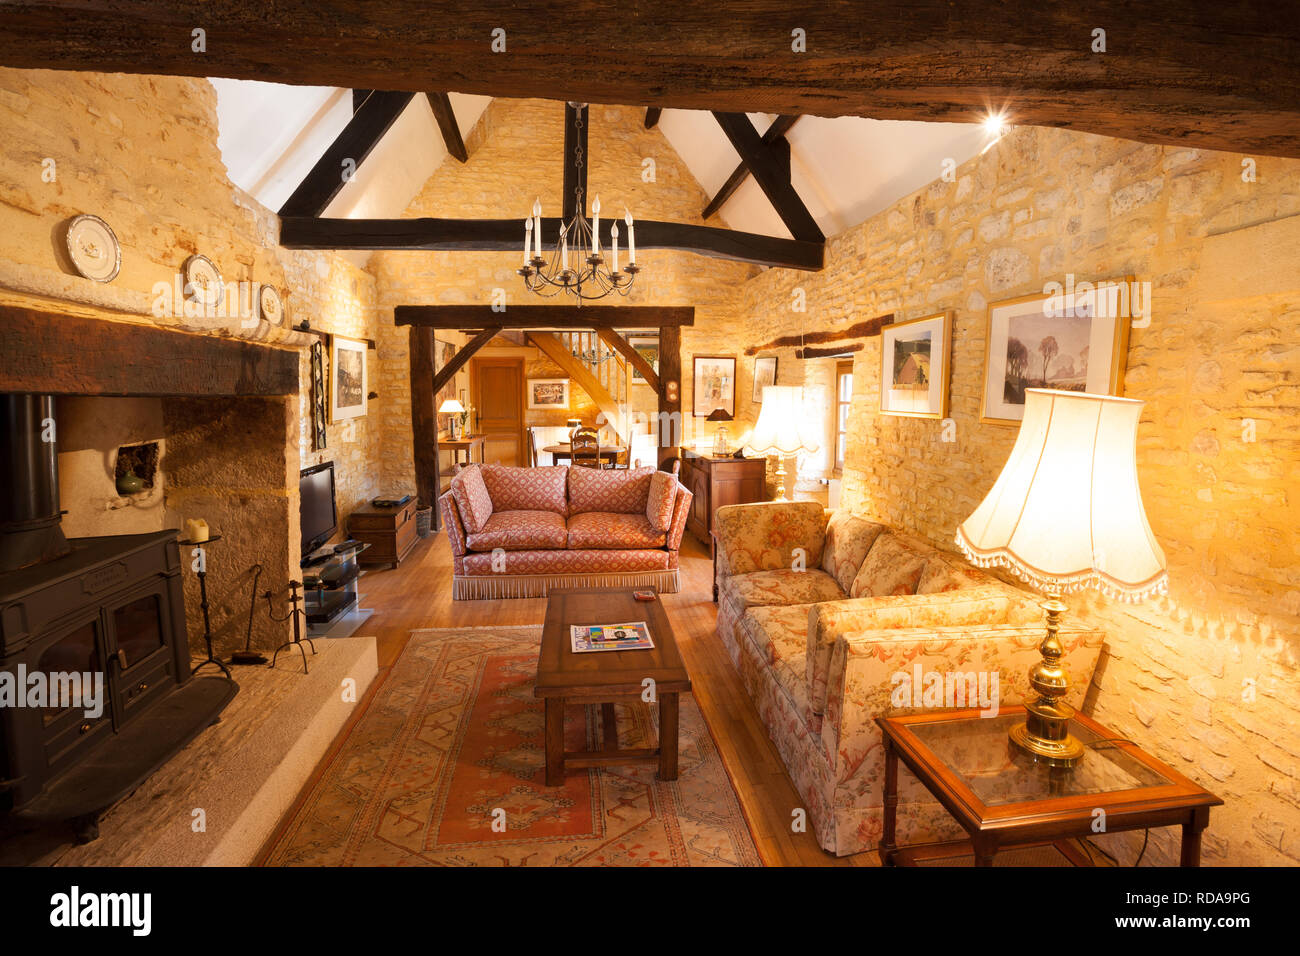 Interior Of A Traditional French Farmhouse Living Room With Stone Walls And Large Firplace Stock Photo Alamy